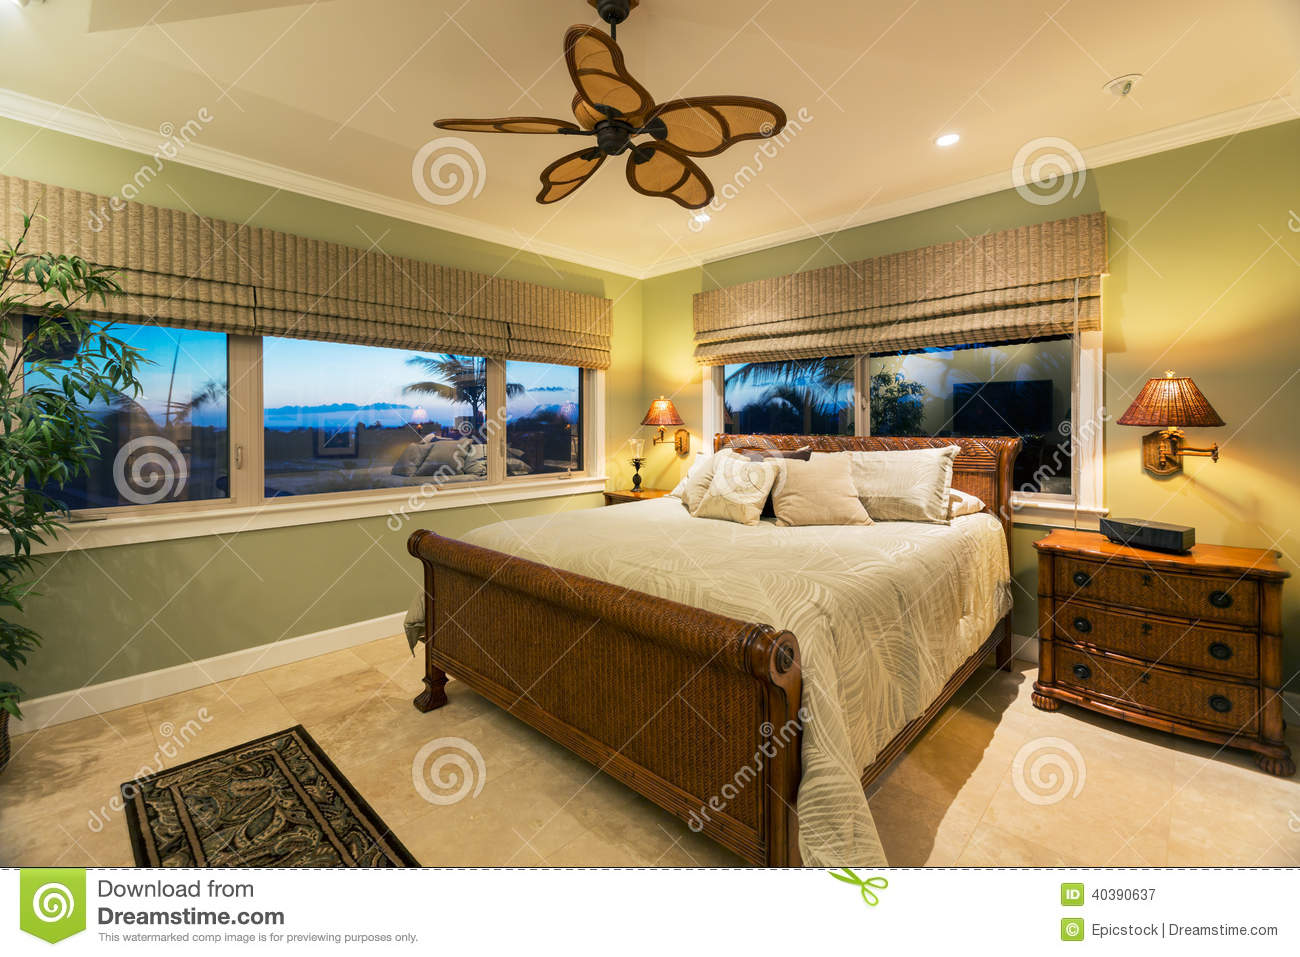 Interior of a luxury hotel bedroom with bathroom royalty for Beautiful bedroom interior